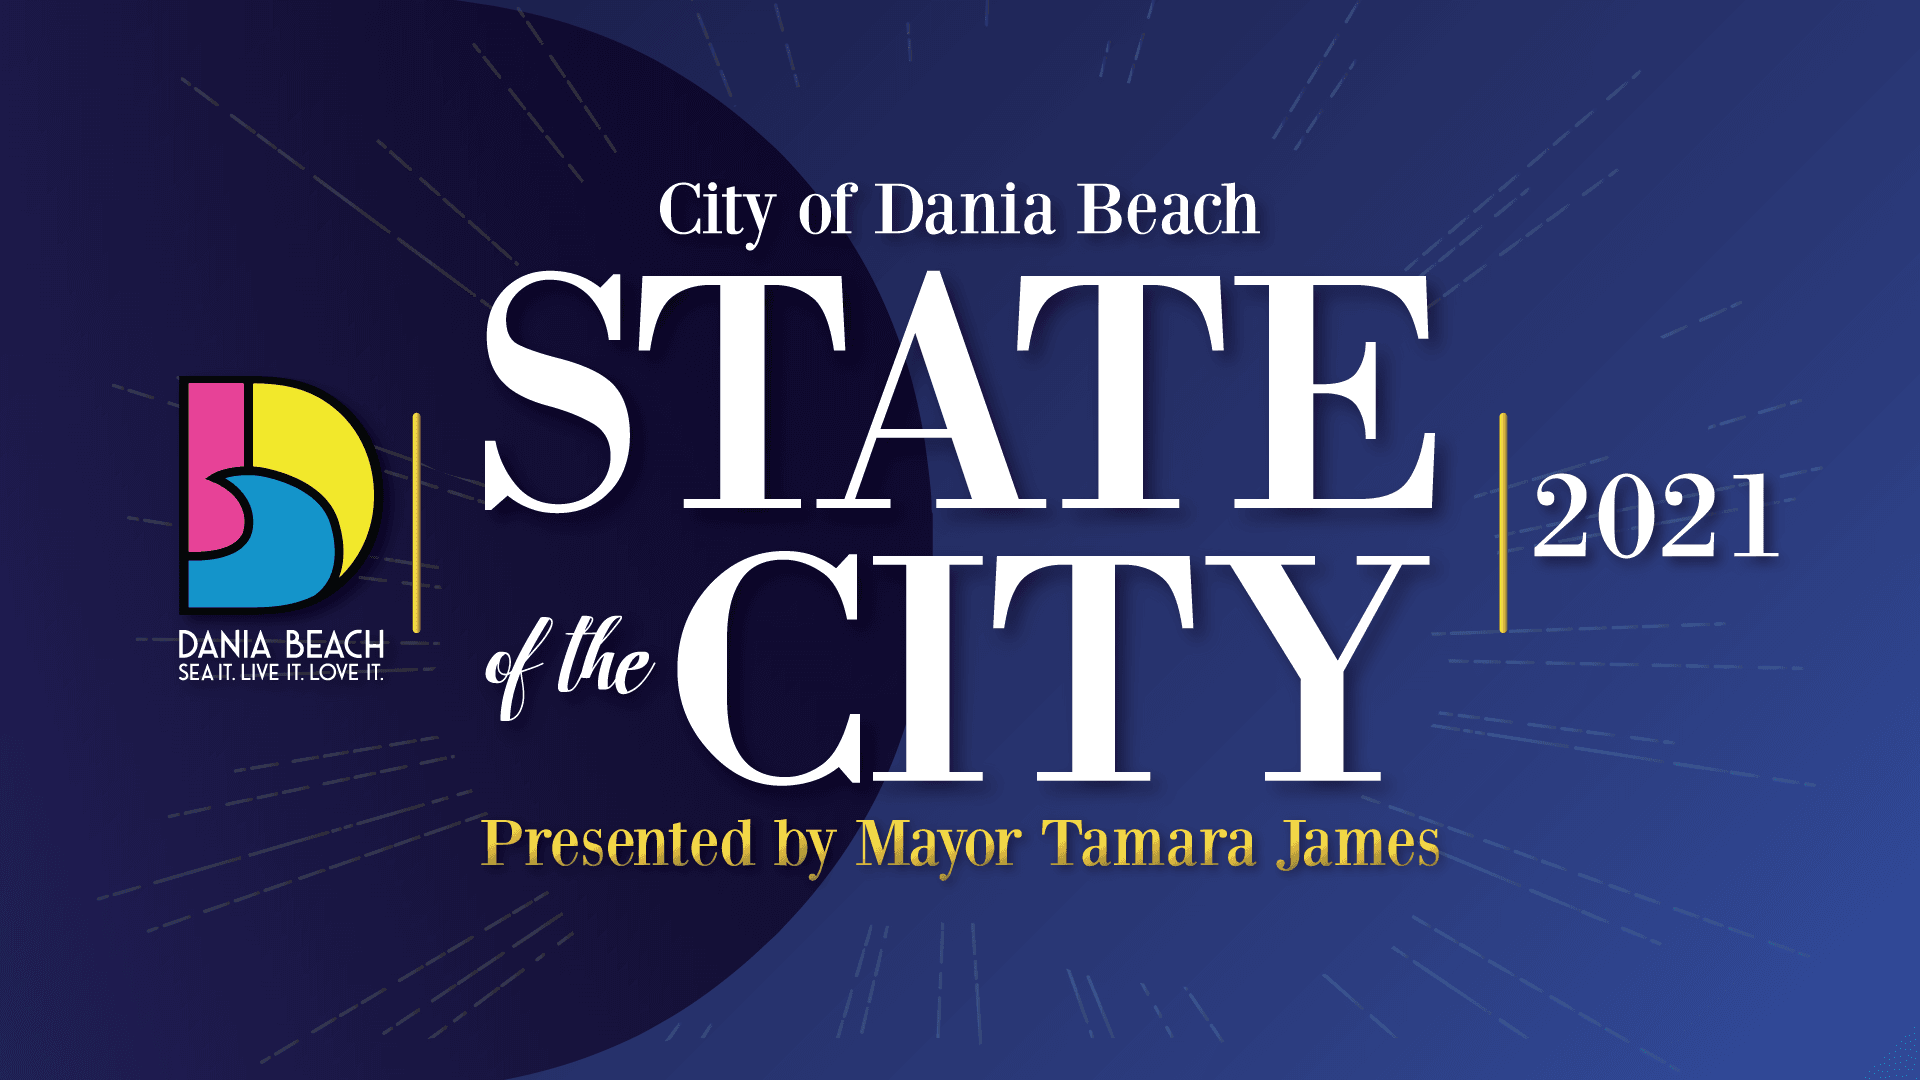 Dania Beach State of The City 2021